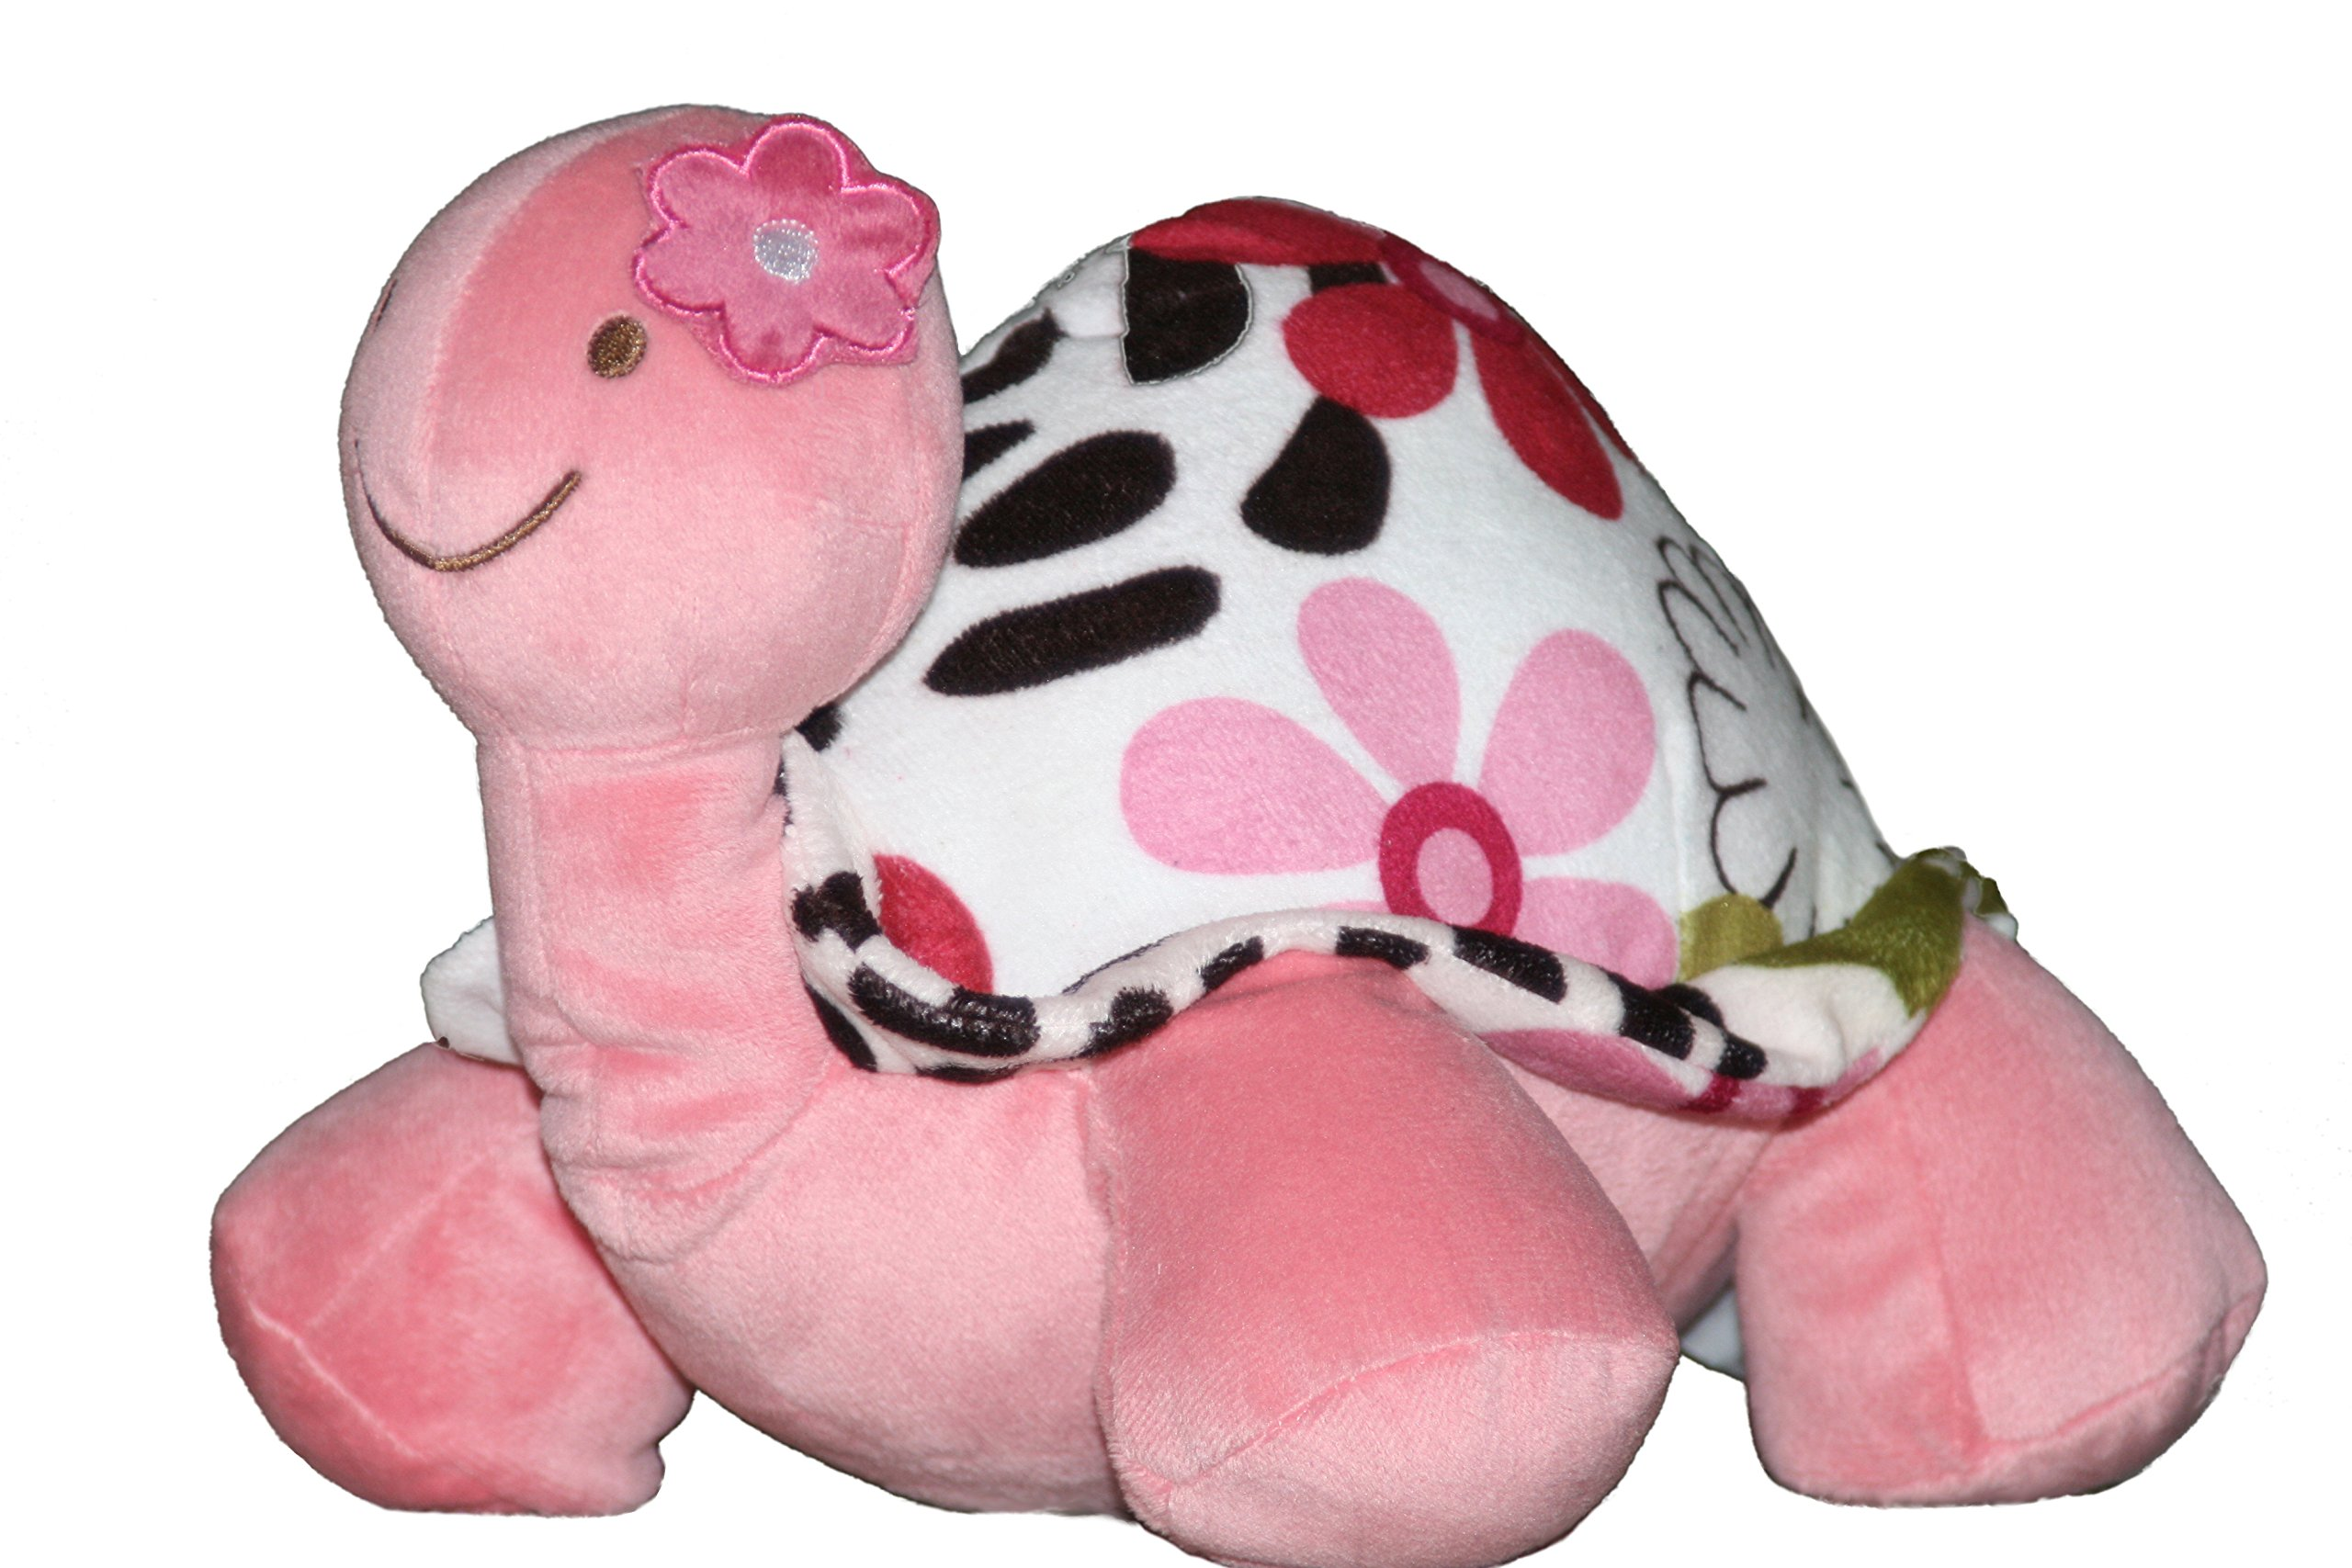 """Plush Turtle Stuffed Animal for Girls with Pink Flowers. A Perfect Baby Shower or Get Well Soon Gift - Soft ,Safe, and Cuddly for Kids. For the Crib, Nursery, or Playroom. 12""""x10""""x8"""""""